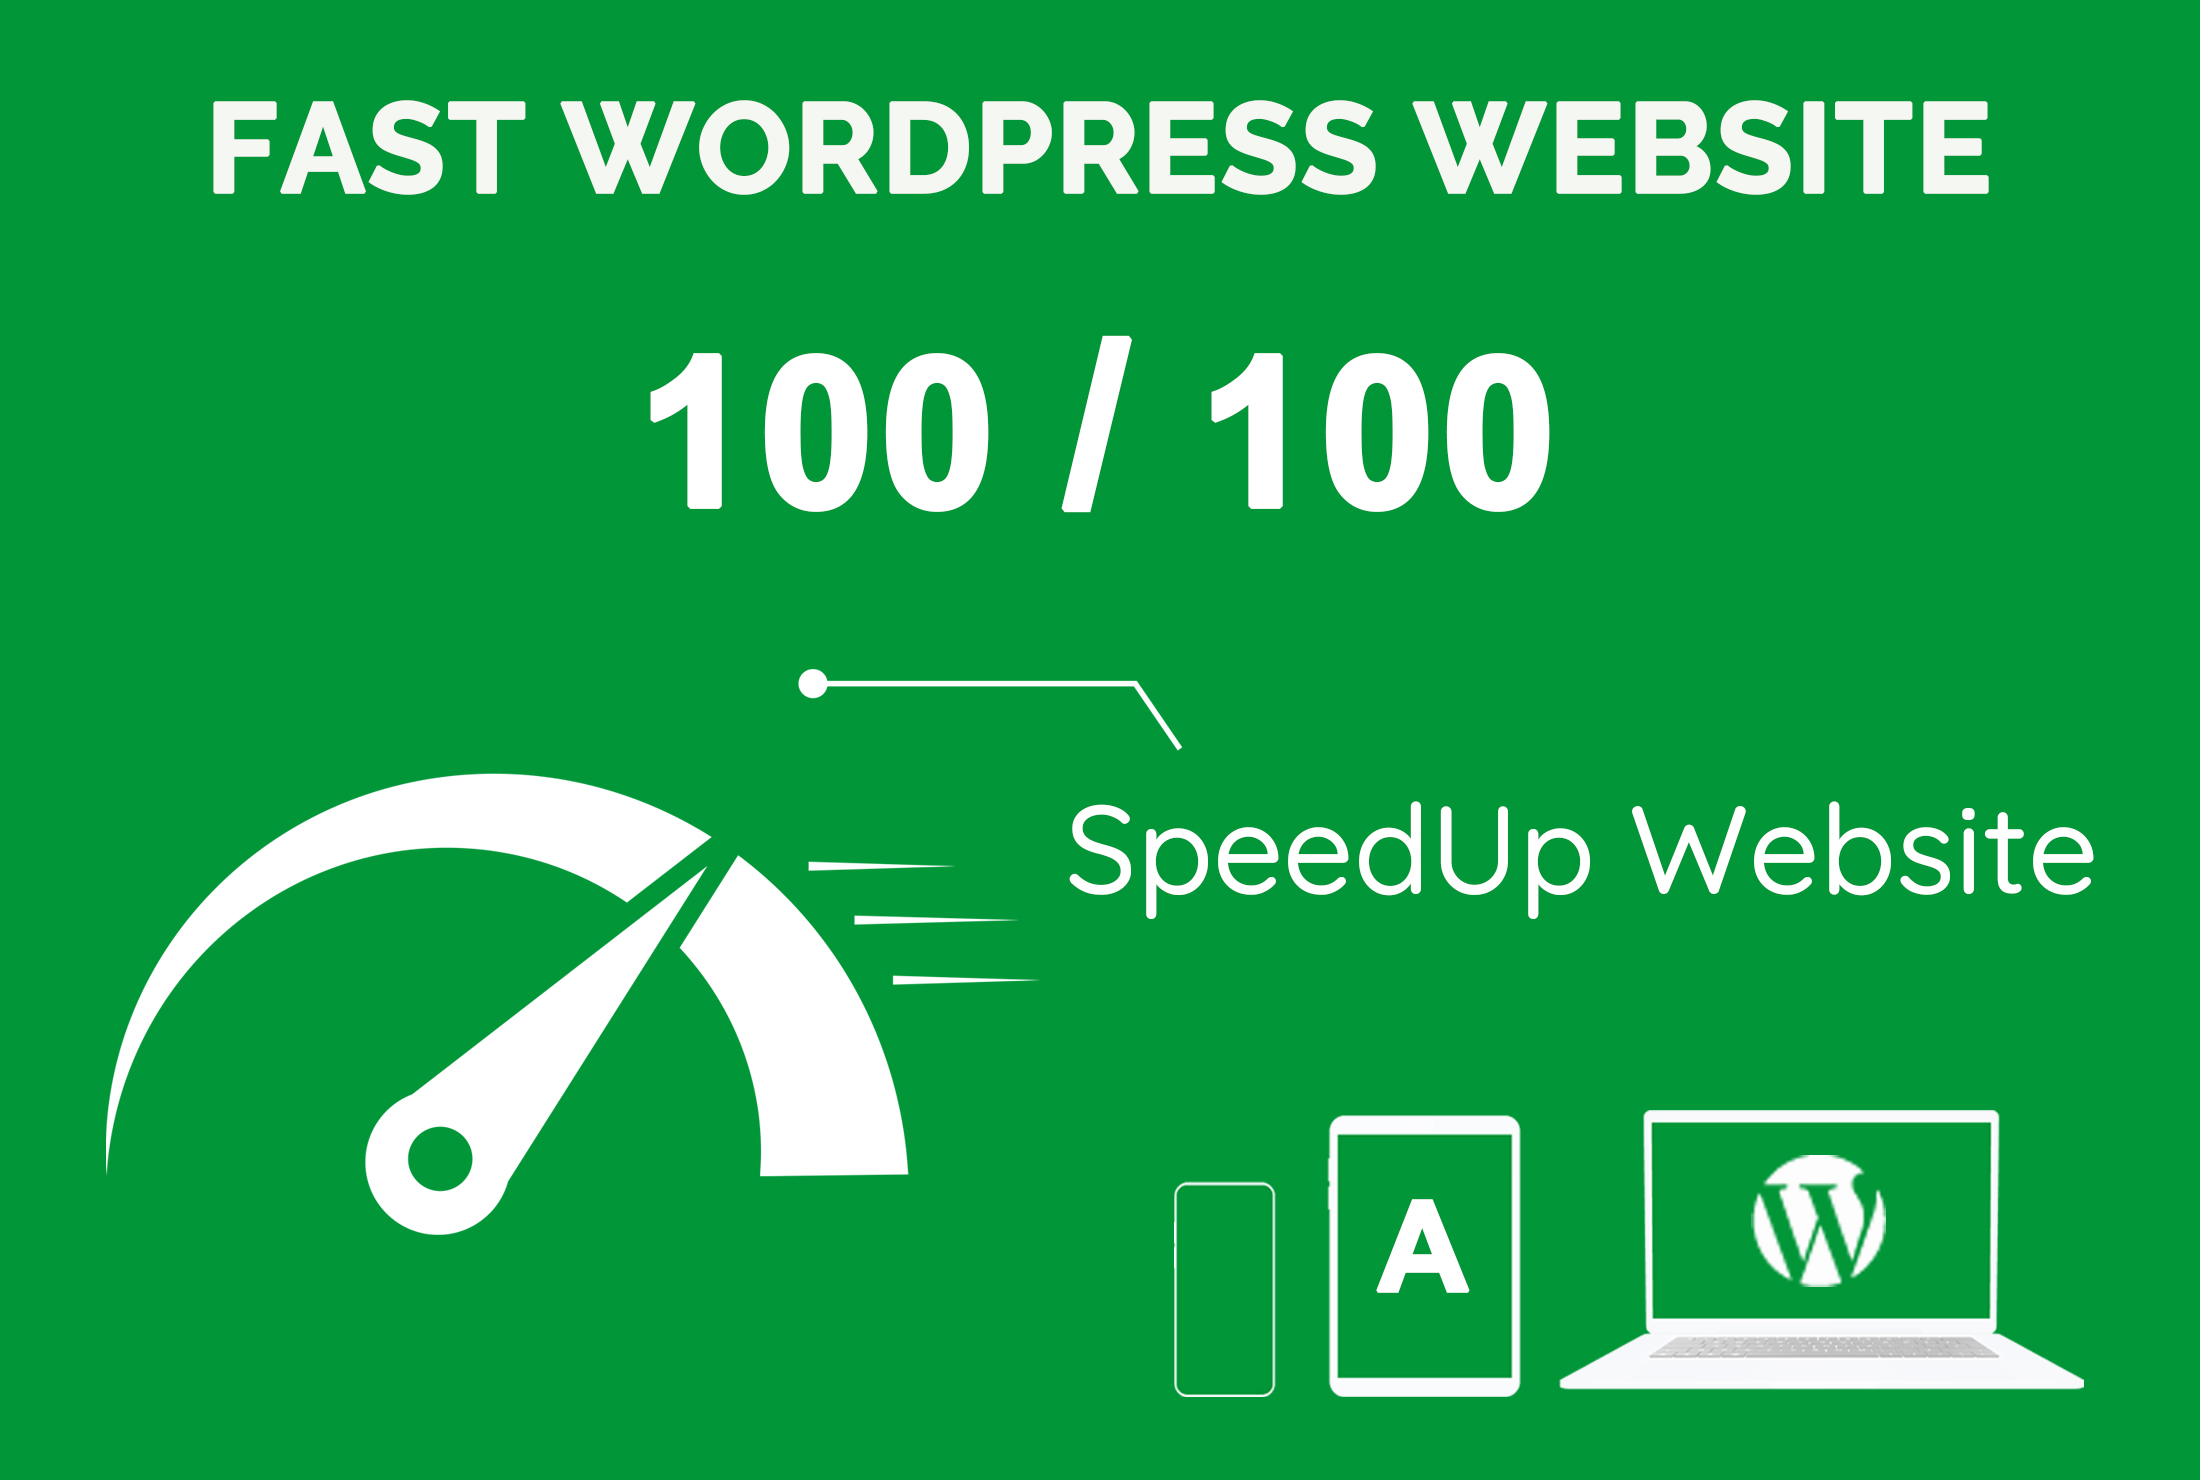 I will optimize wordpress website speed and improve gtmetrix, google pagespeed score